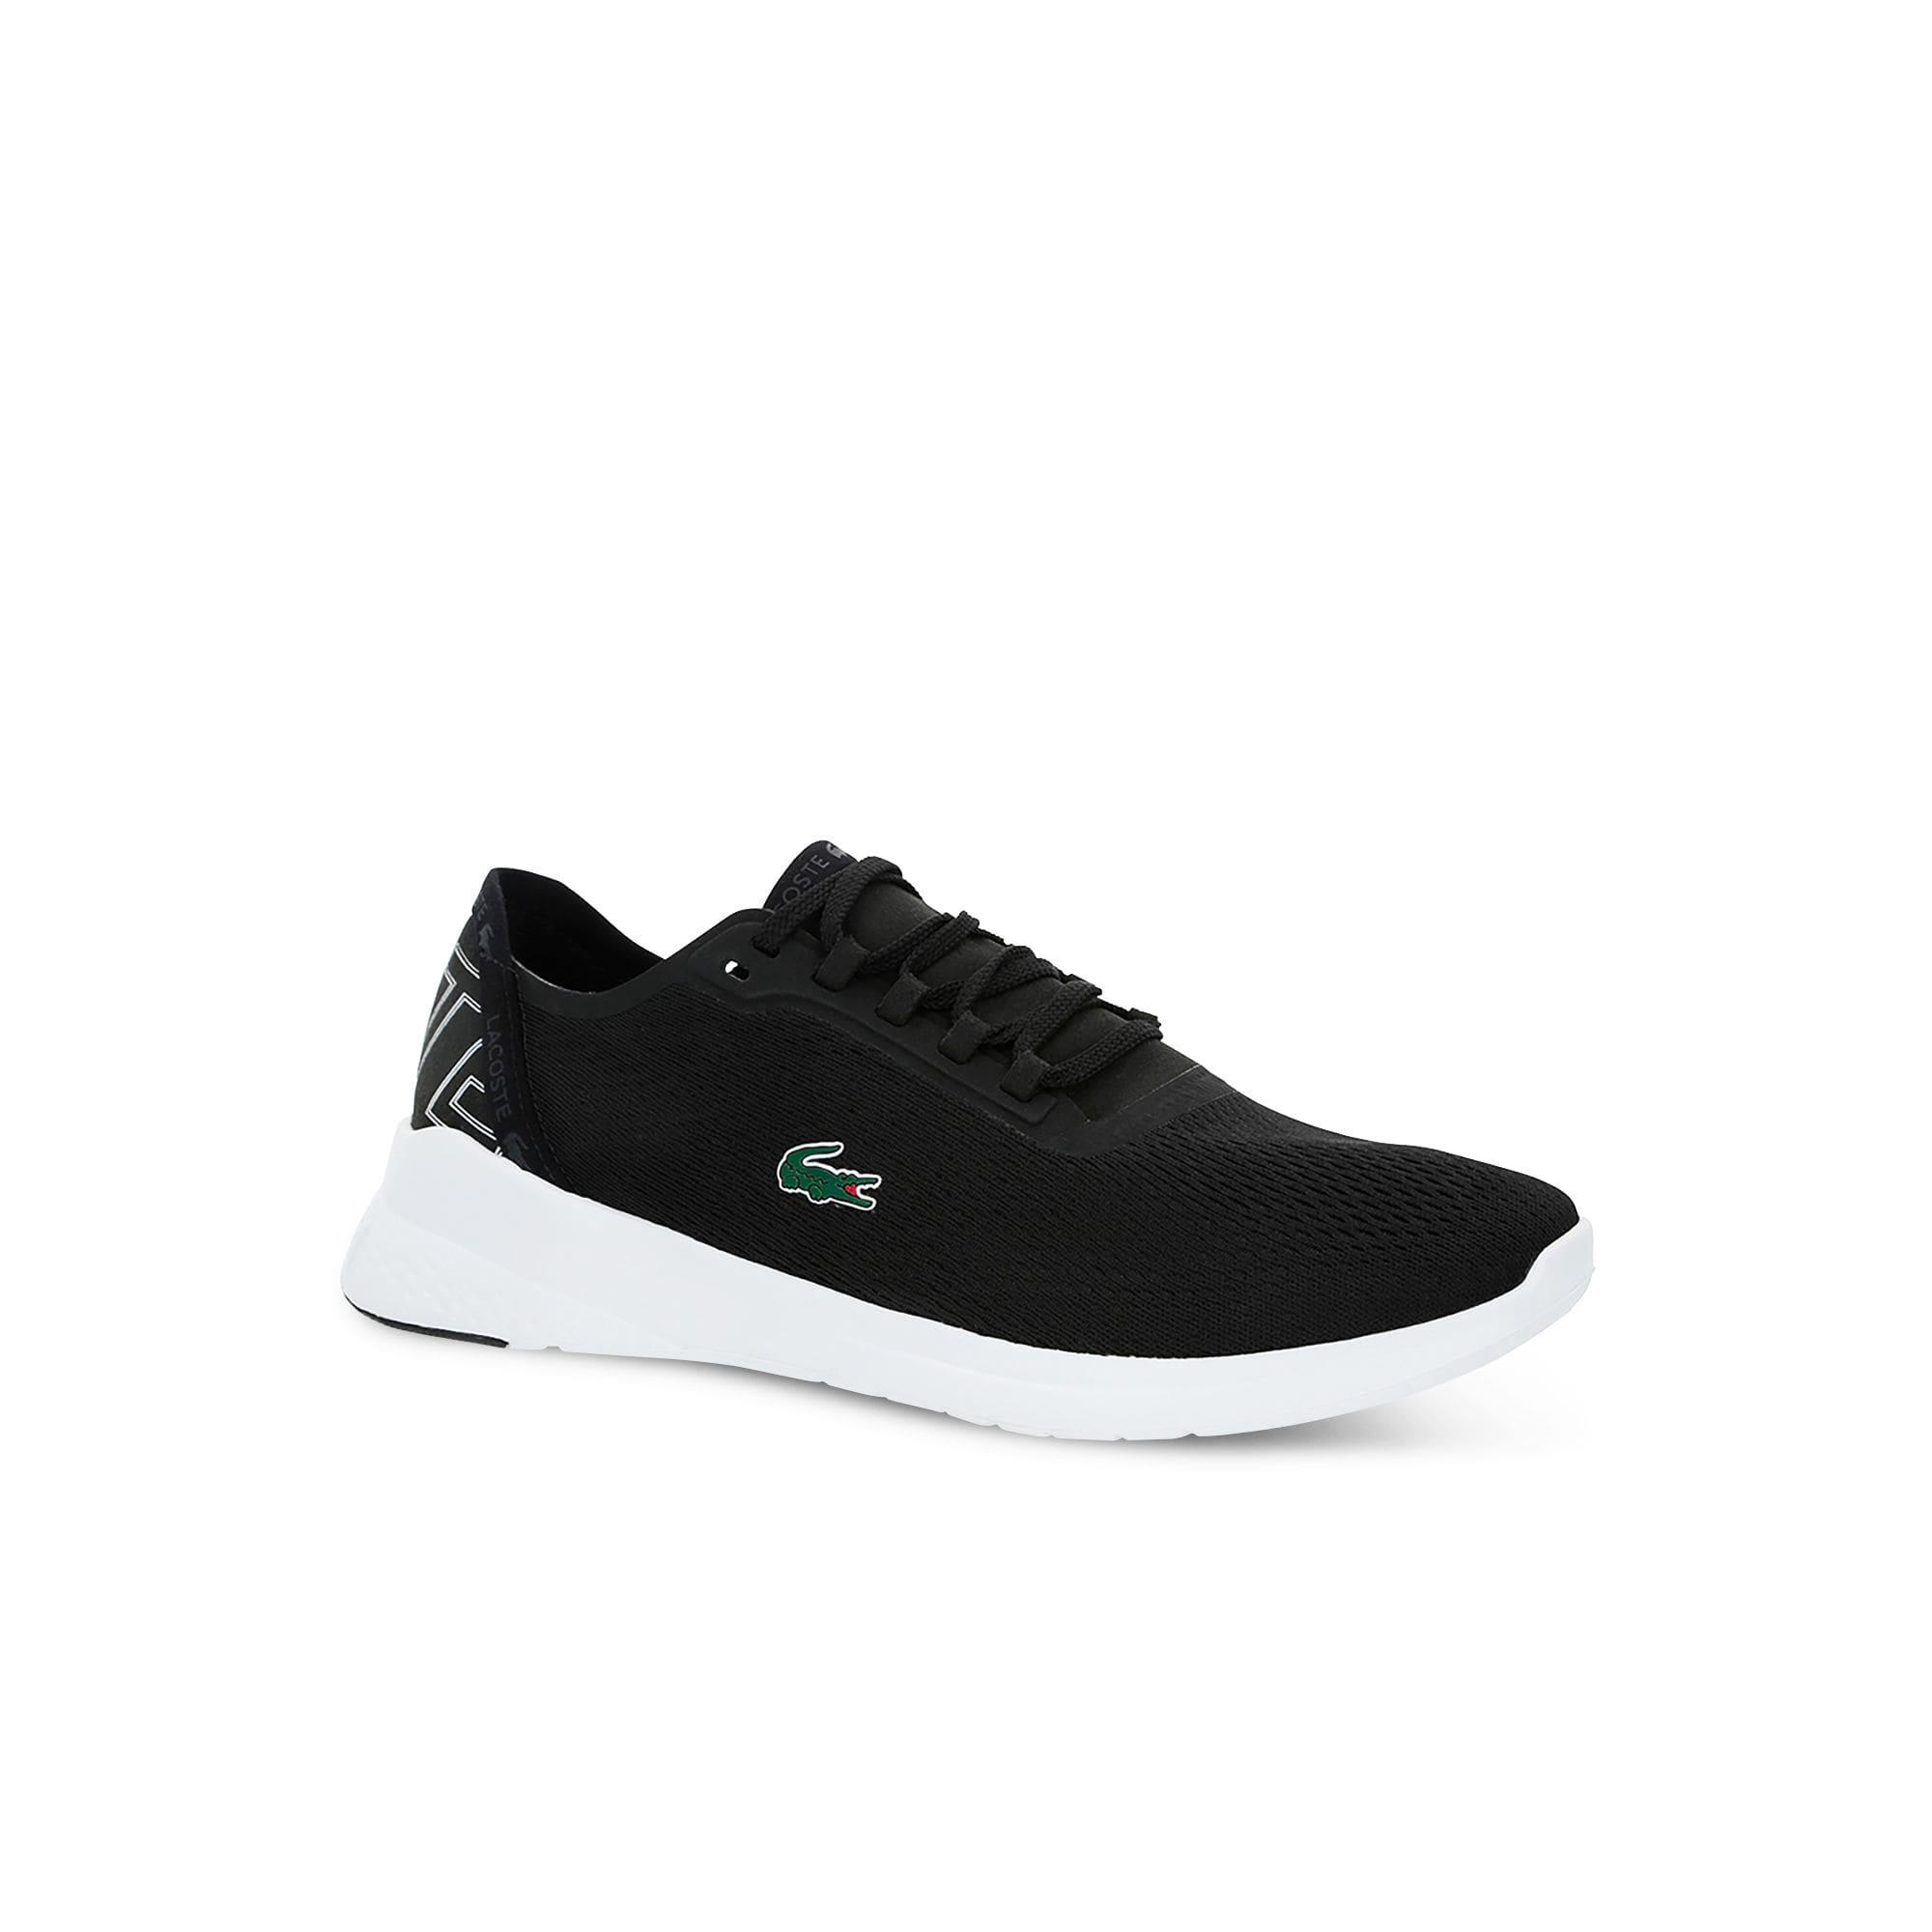 1bd137c0d00d Lyst - Lacoste Lt Fit Sneakers With Green Croc in Black for Men